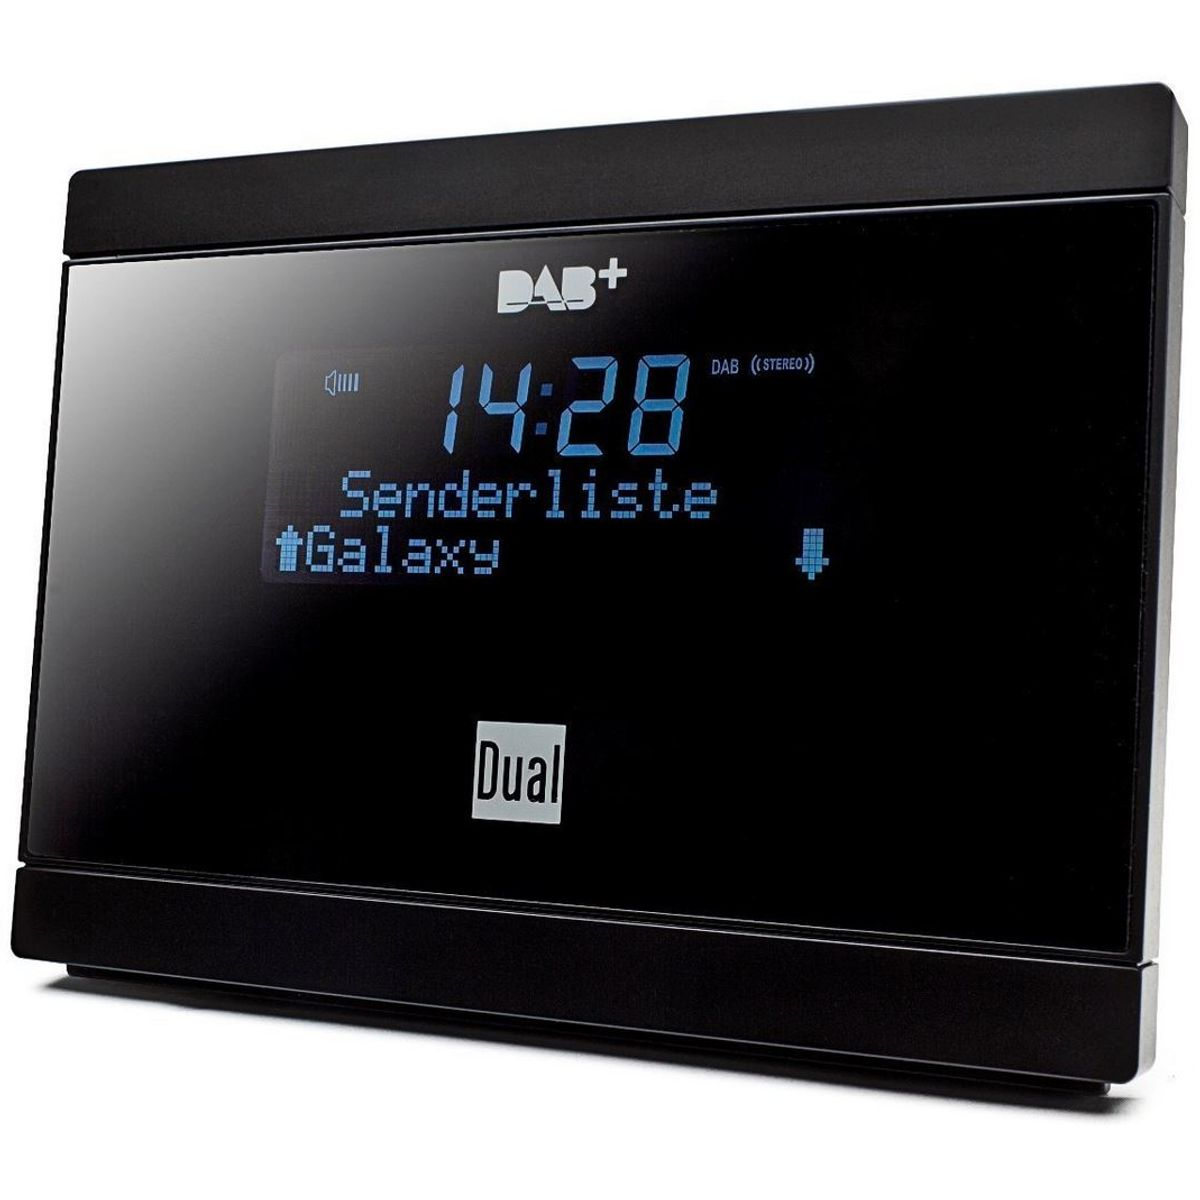 Dual DAB 2 A Digital-Radio Adapter mit Fernbedienung (LCD-Display, DAB(+)